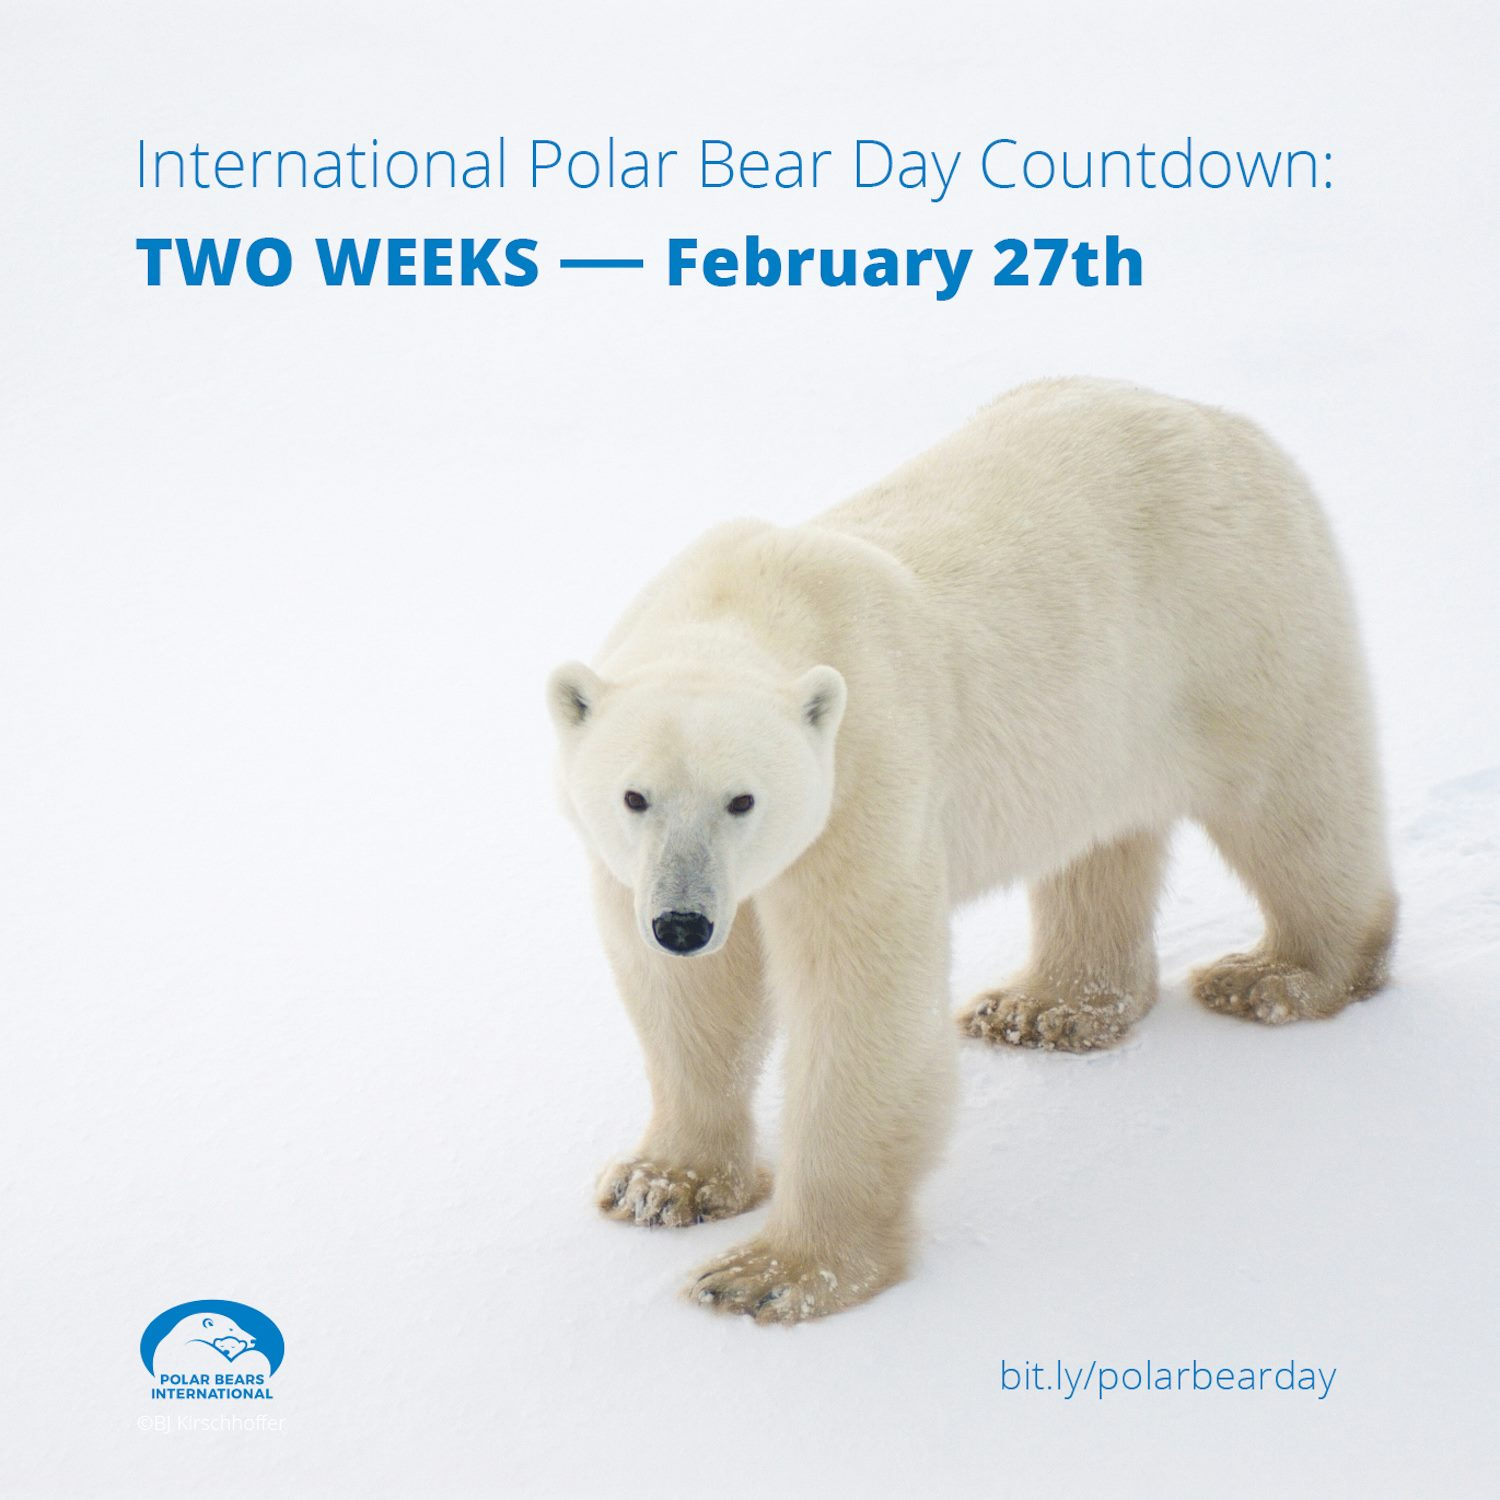 20190218-polar-bear-day.jpg